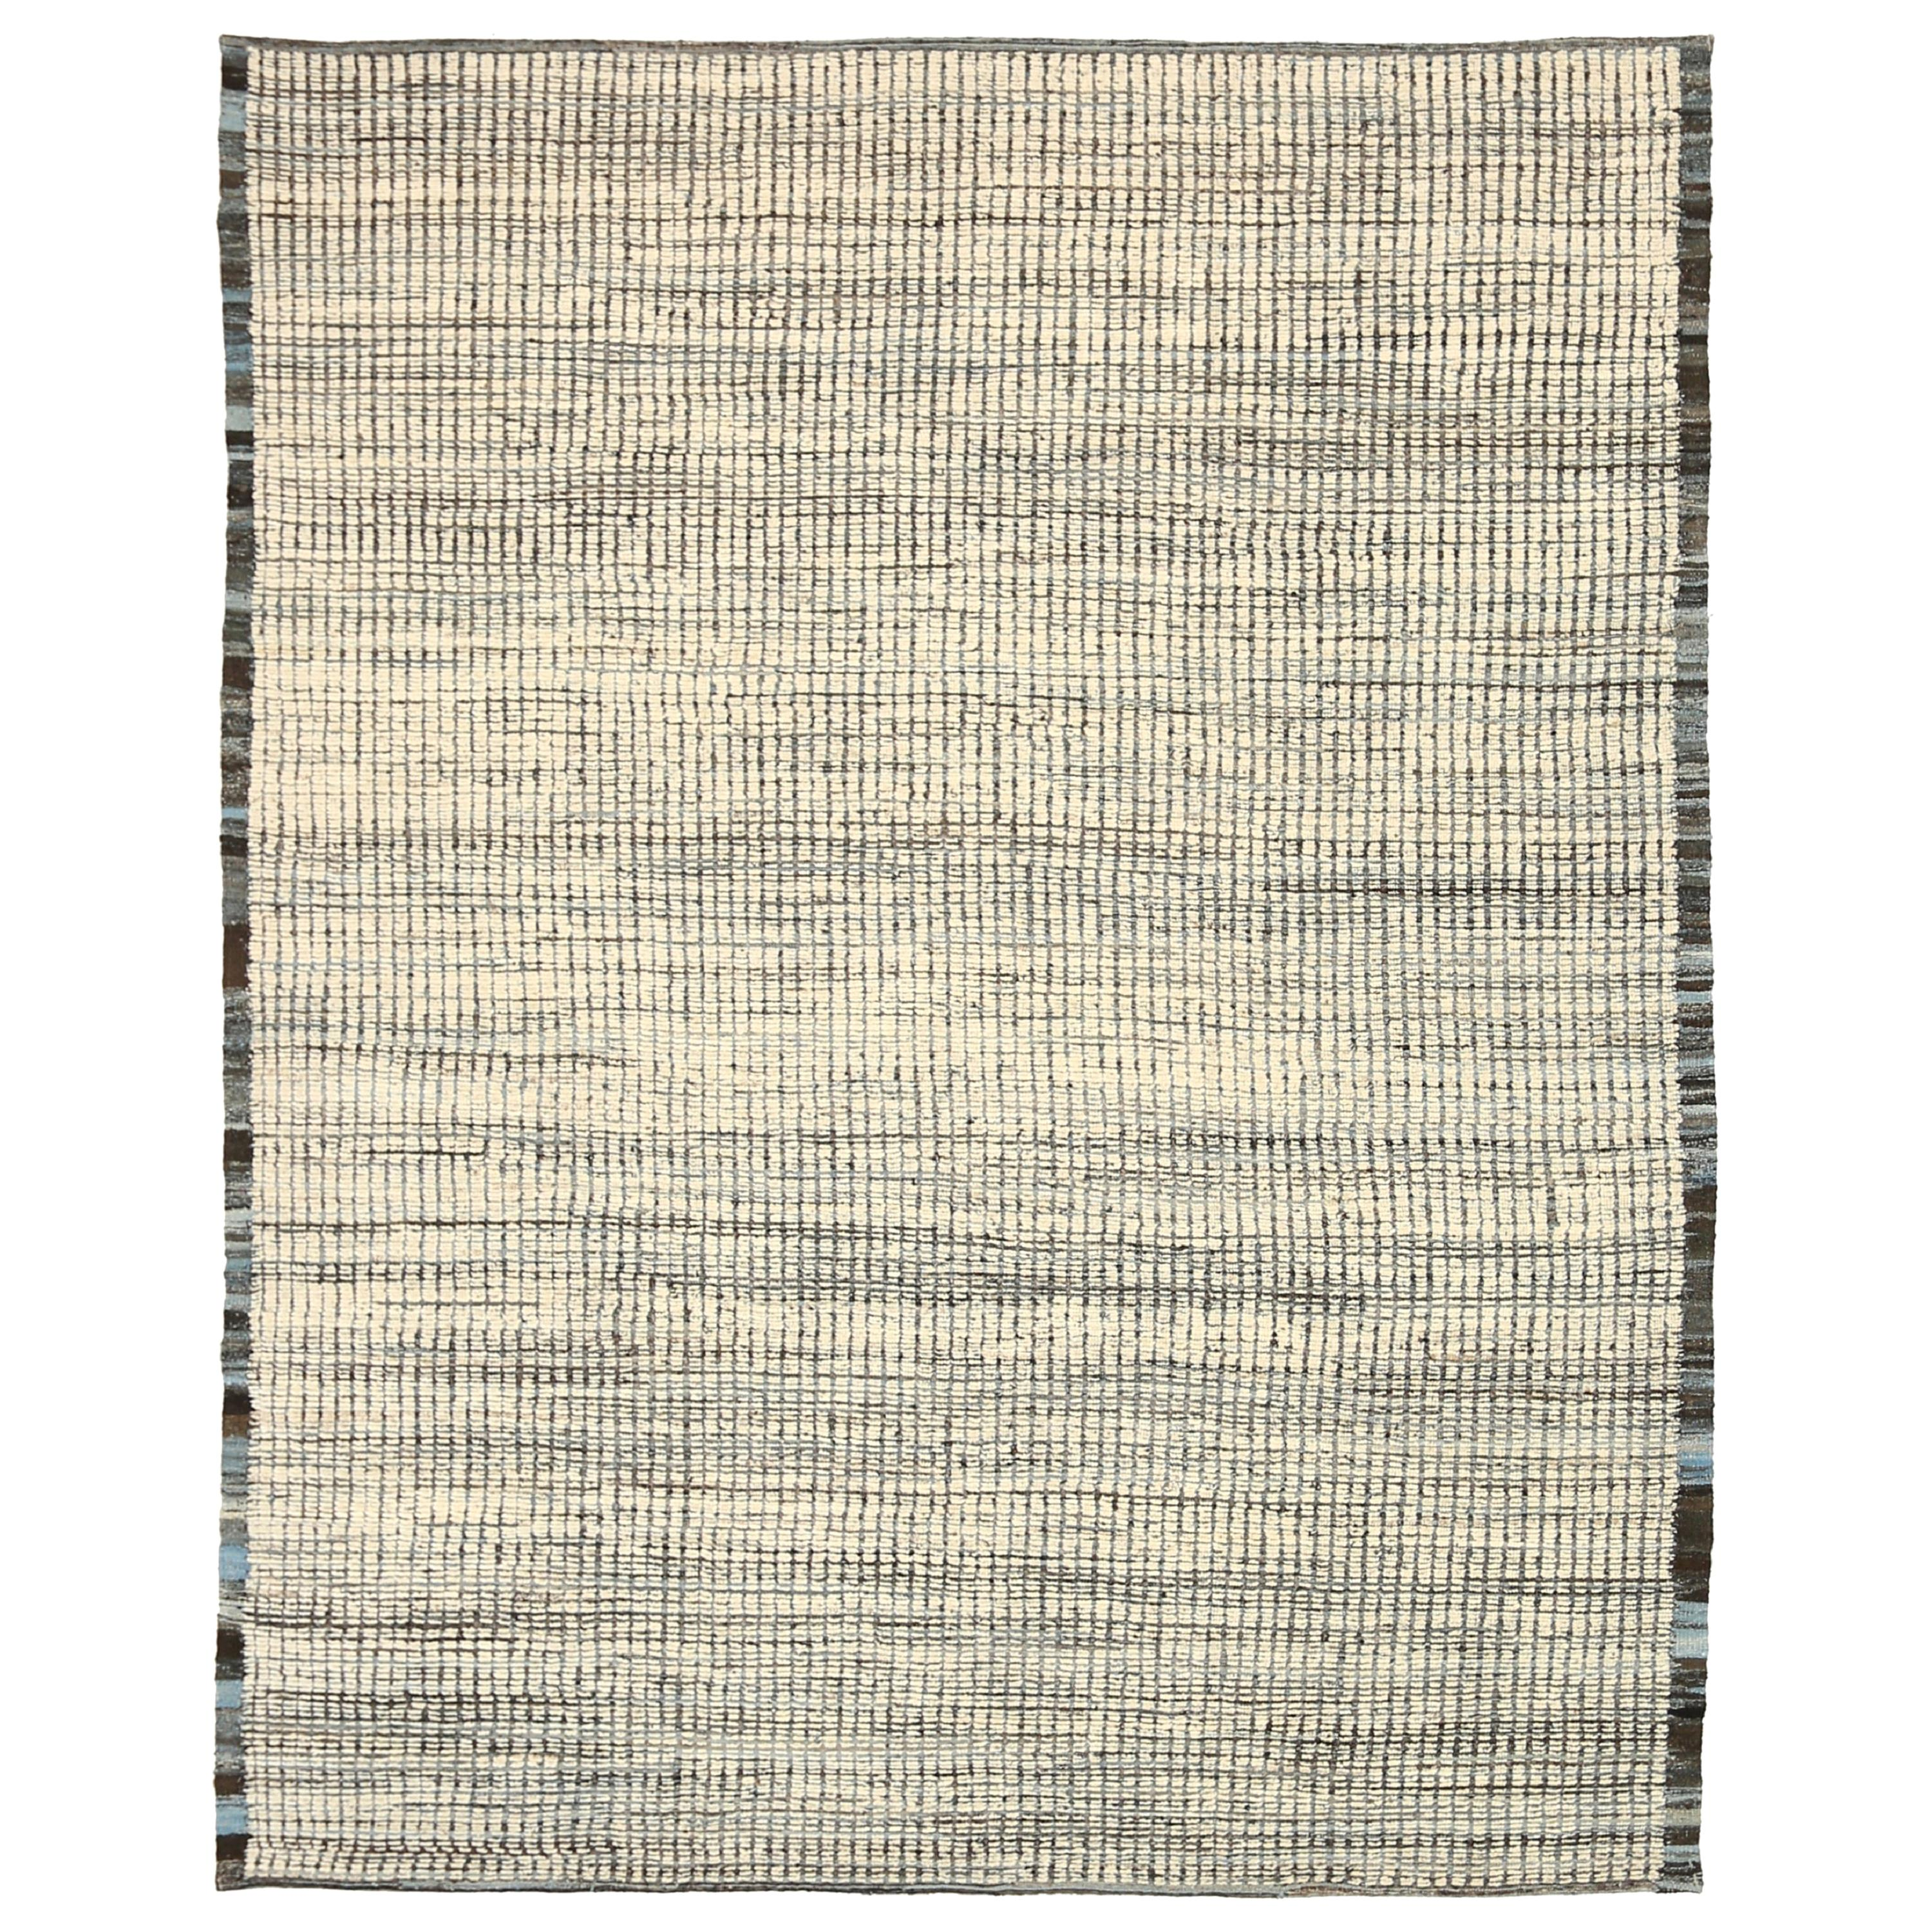 Nazmiyal Collection Beige Textured Modern Distressed Rug. 9 ft 8 in x 12 ft